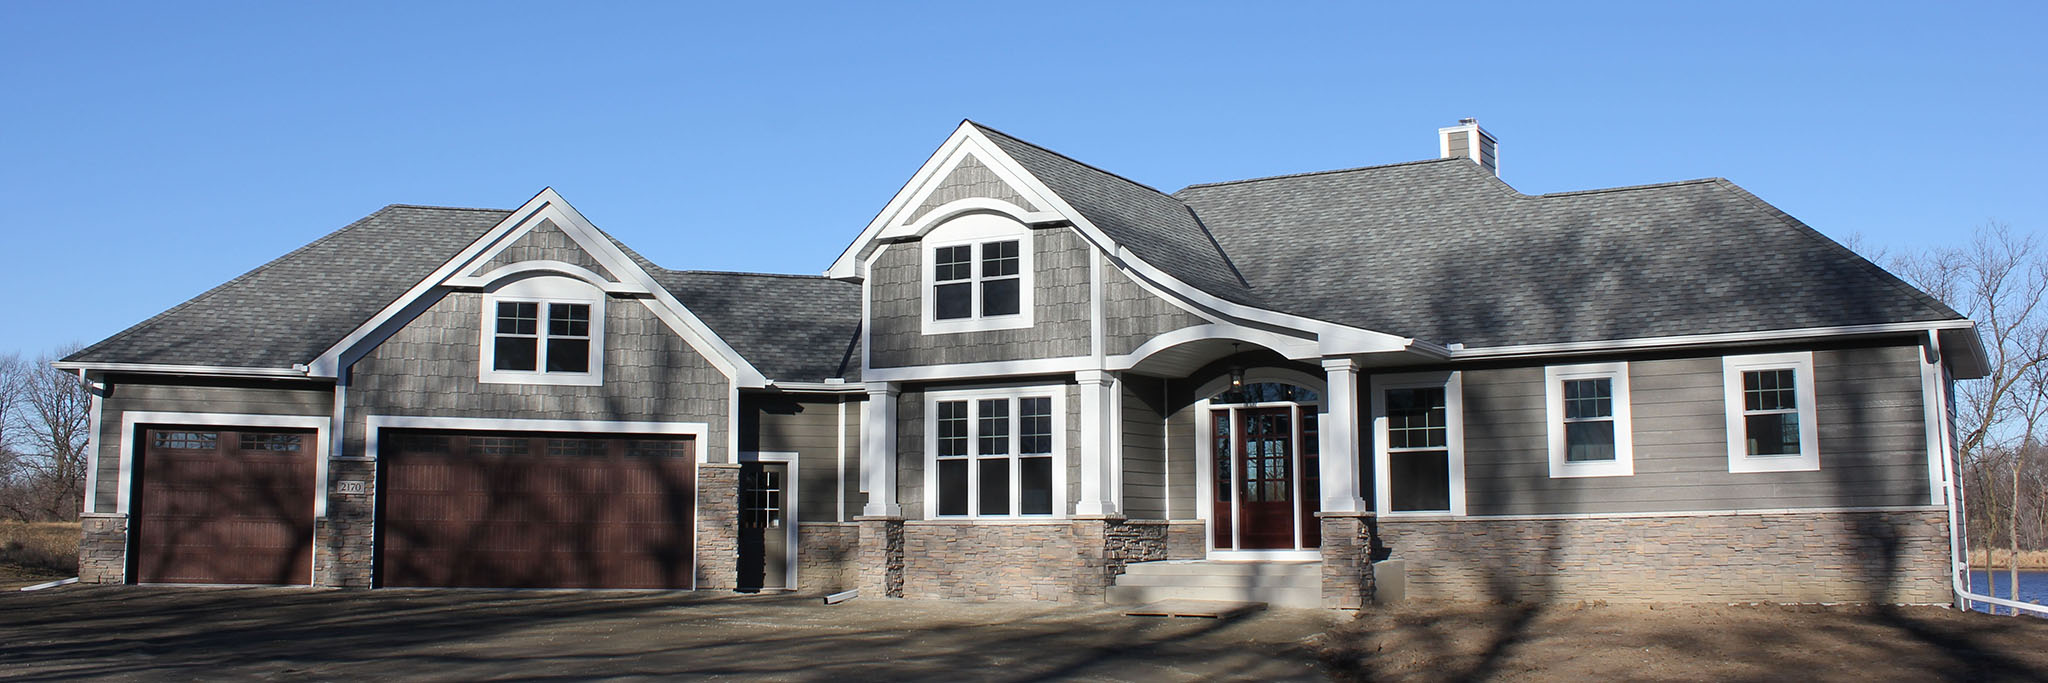 Sprawling rambler with three-stall garage, ledgestone wainscoat, LP Smartside and shakes and wide accent trim